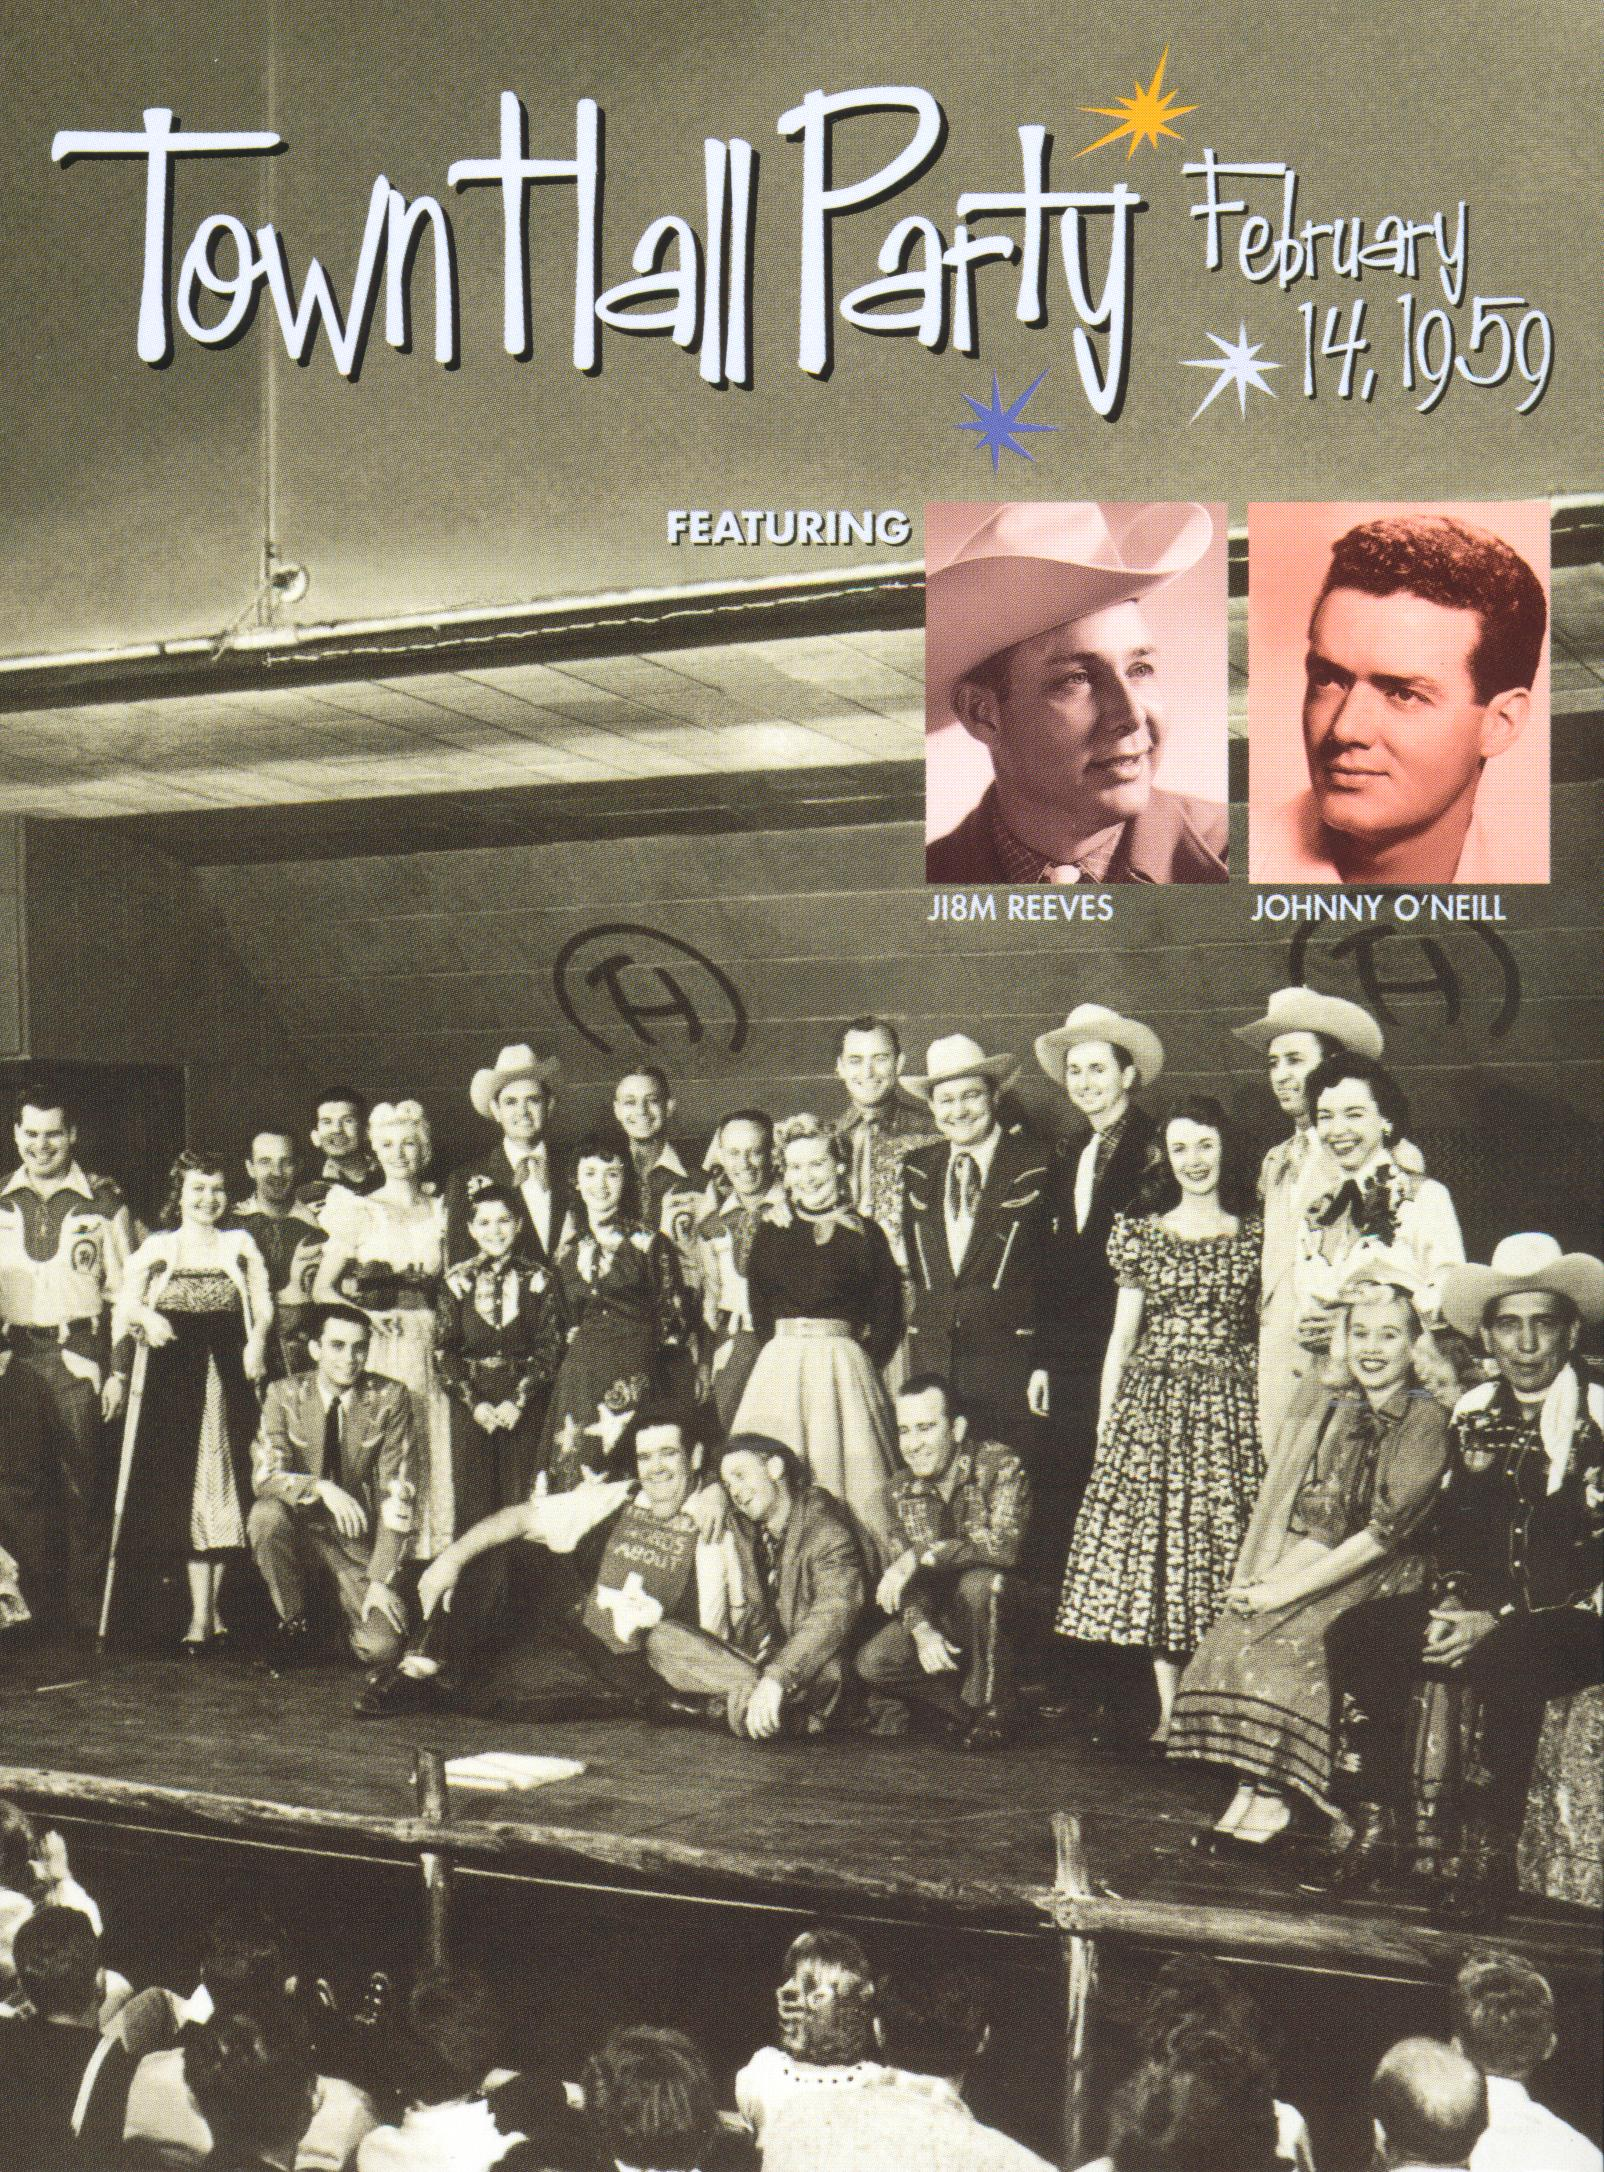 Town Hall Party: February 14, 1959